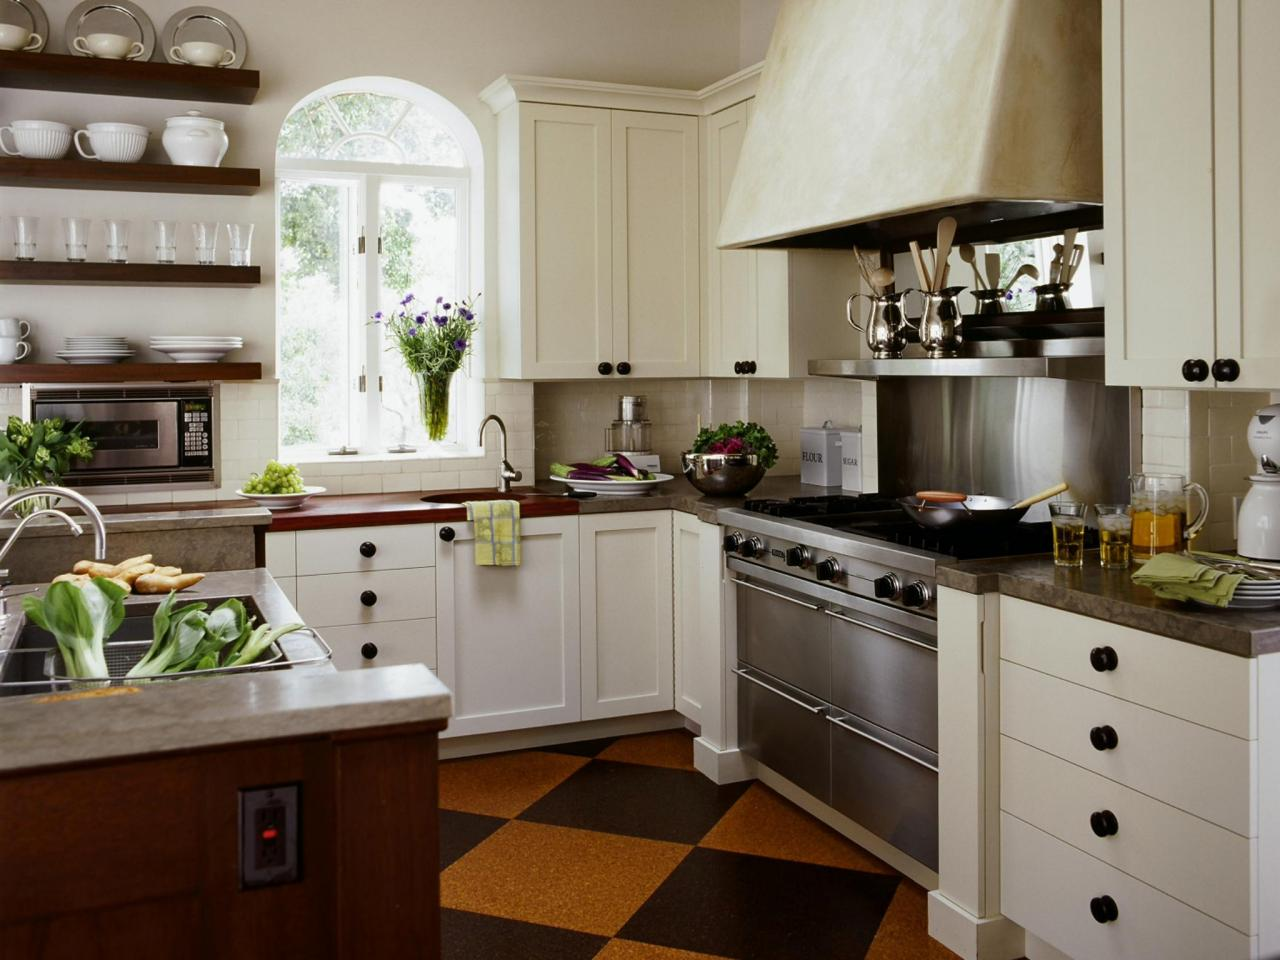 Remodel your Kitchen on Budget